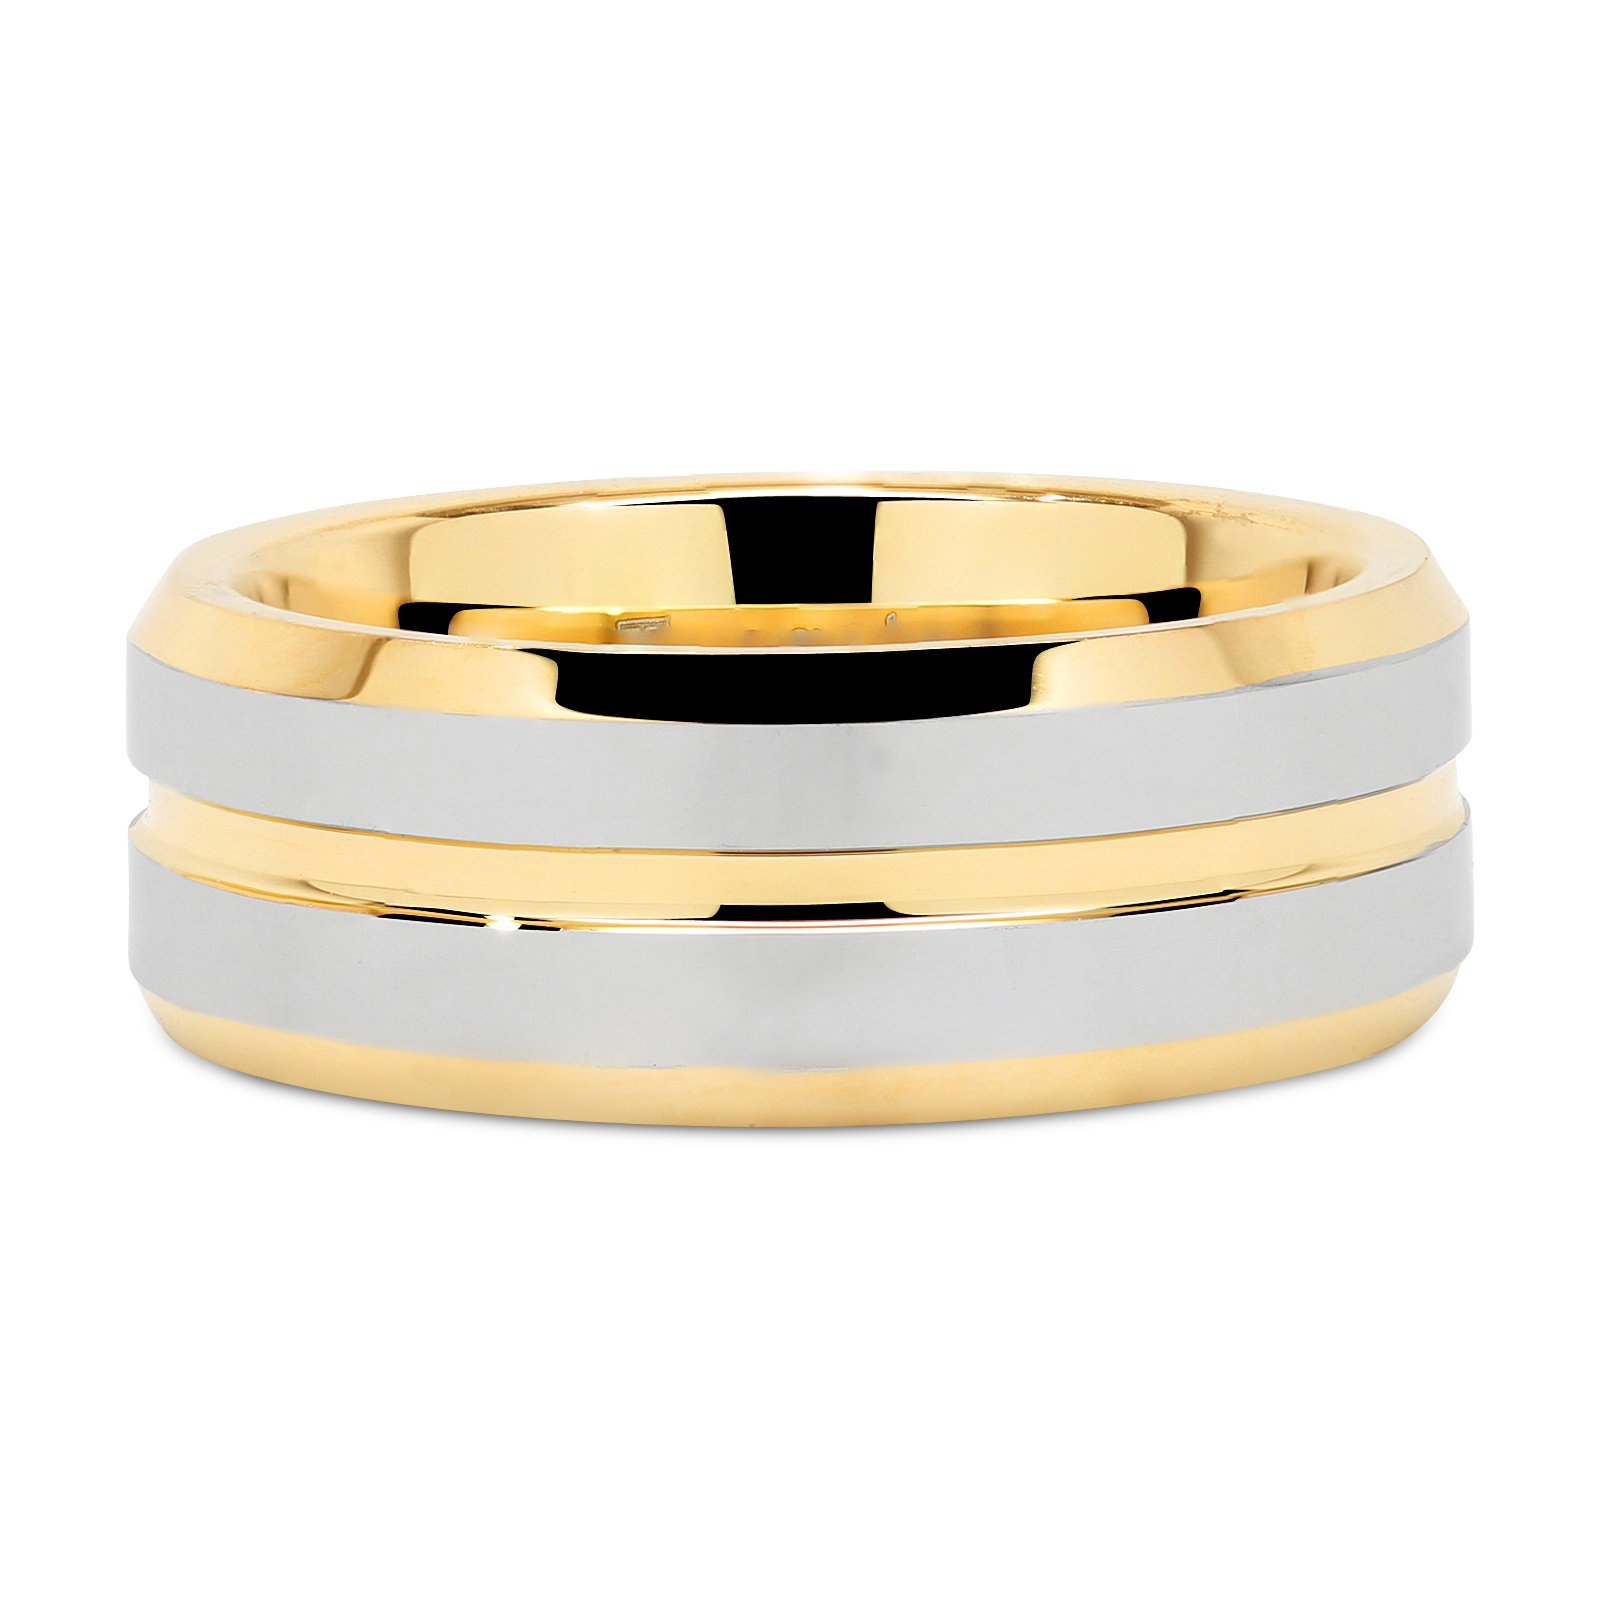 Tungsten Rings for Mens Wedding Bands Gold Silver Two Tone Grooved Center Line Size 8-15 (13) by 100S JEWELRY (Image #4)